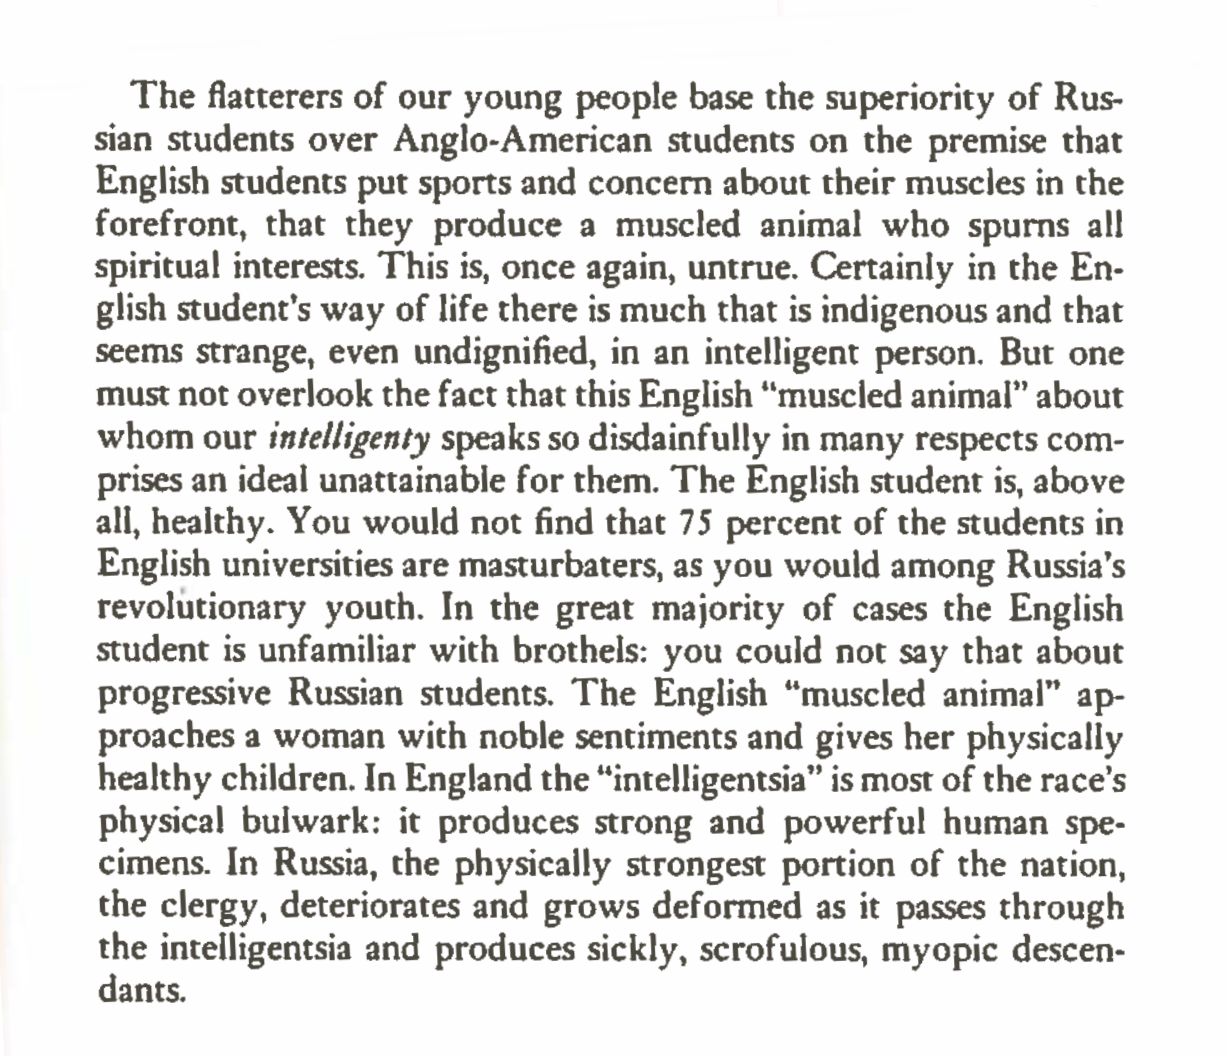 """""""...But one must not overlook the fact that this English """"muscled animal"""" about whom our intelligentsia speaks so disdainfully in many respects comprises an ideal unattainable for them. The English student is, above all, healthy. You would not find that 75 percent of the students in English universities are masturbators, as you would among Russia's revolutionary youth. In the great majority of cases the English student is unfamiliar with brothels: you could not say that about progressive Russian students. The English """"muscled animal"""" approaches a woman with noble sentiments and gives her physically healthy children. In England the """"intelligentsia"""" is most of the race's physical bulwark: it produces strong and powerful human specimens..."""""""